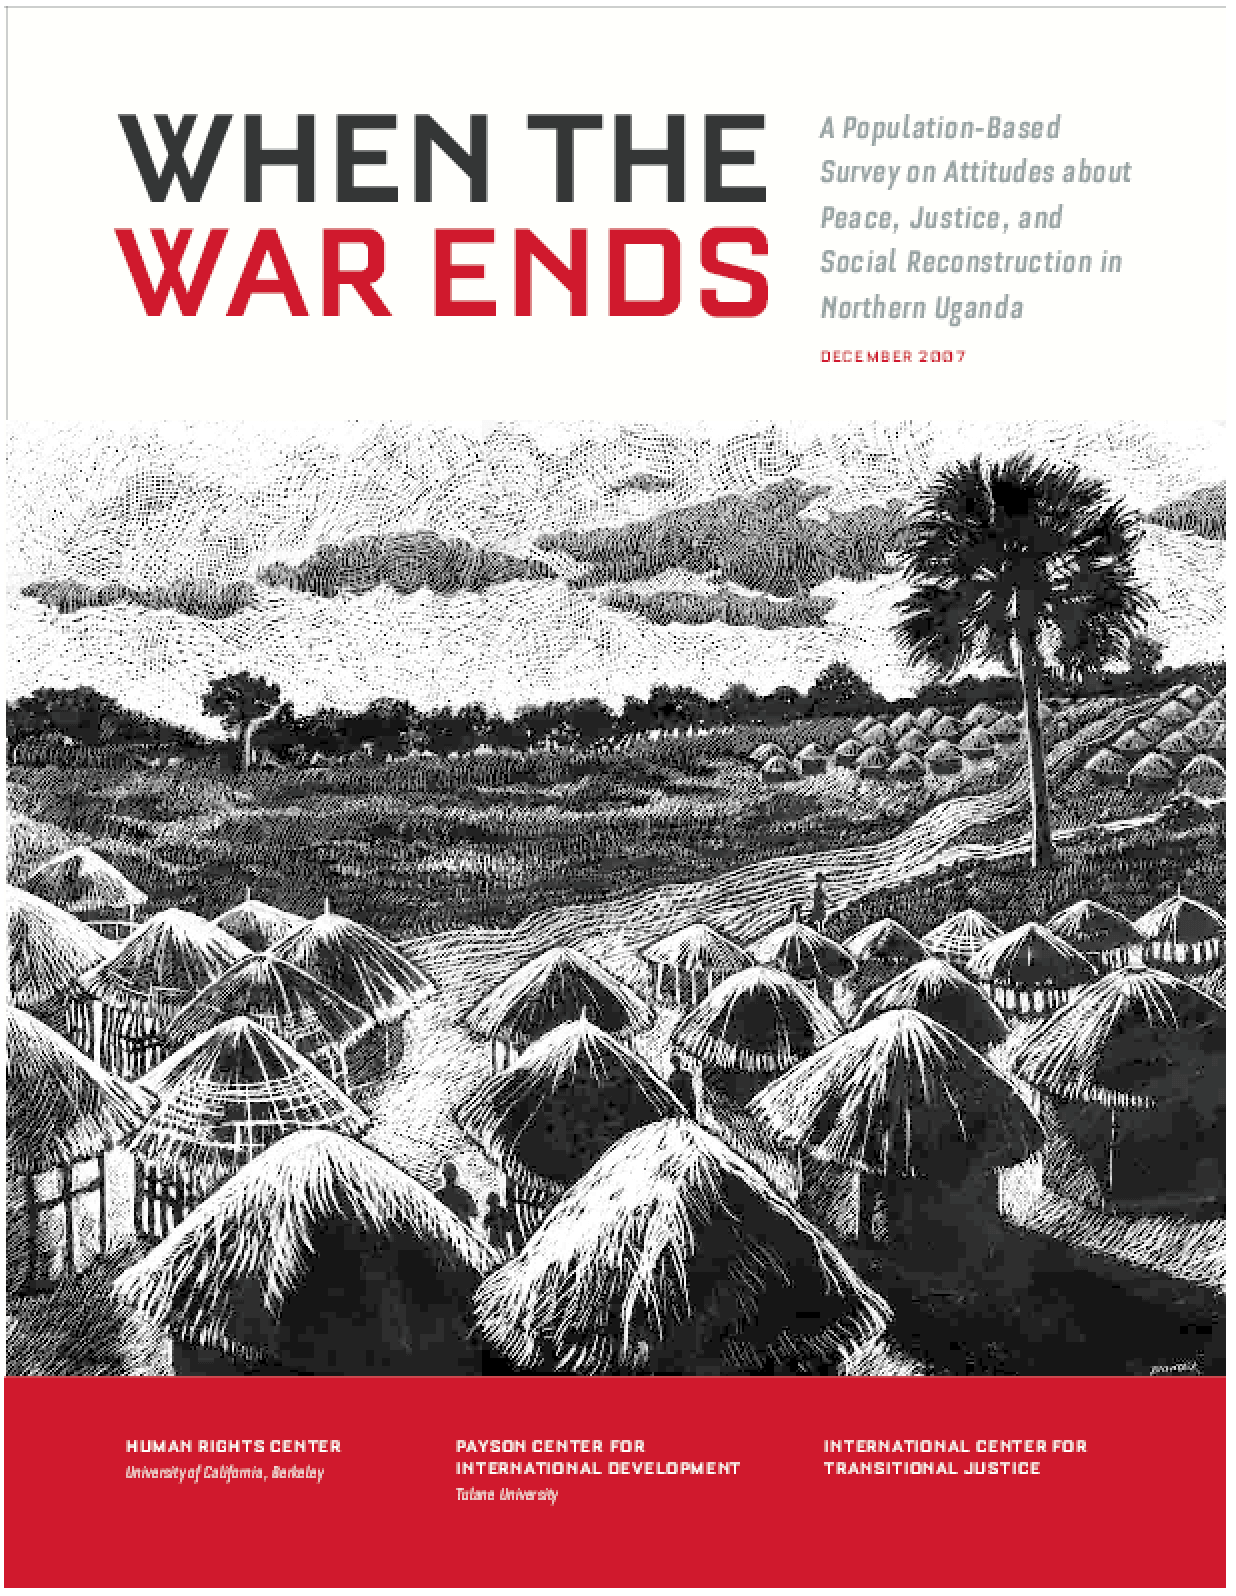 When the War Ends: A Population-Based Survey on Attitudes About Peace, Justice and Social Reconstruction in Northern Uganda